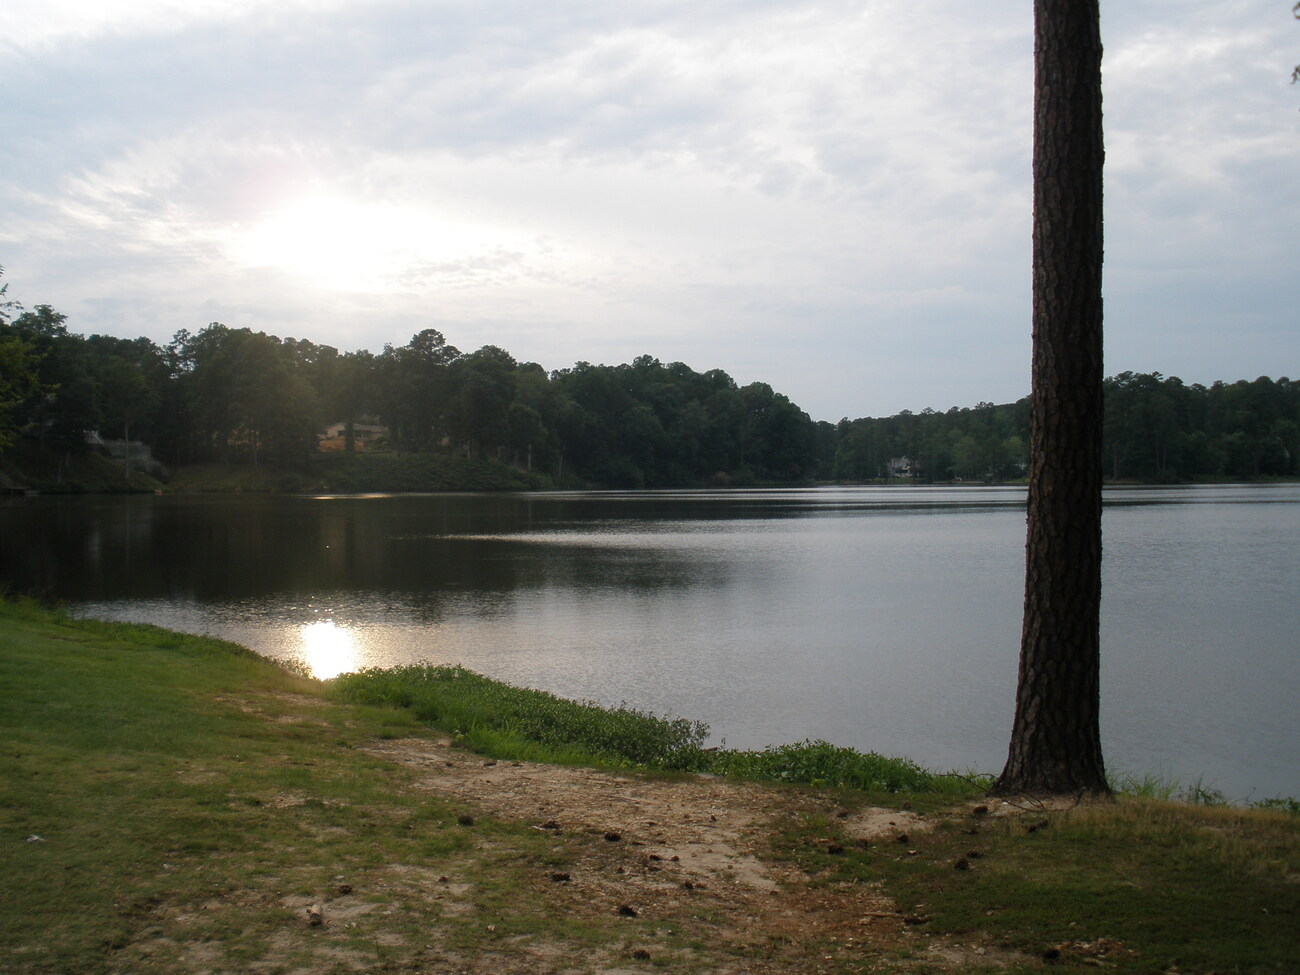 Serenity by the Lake